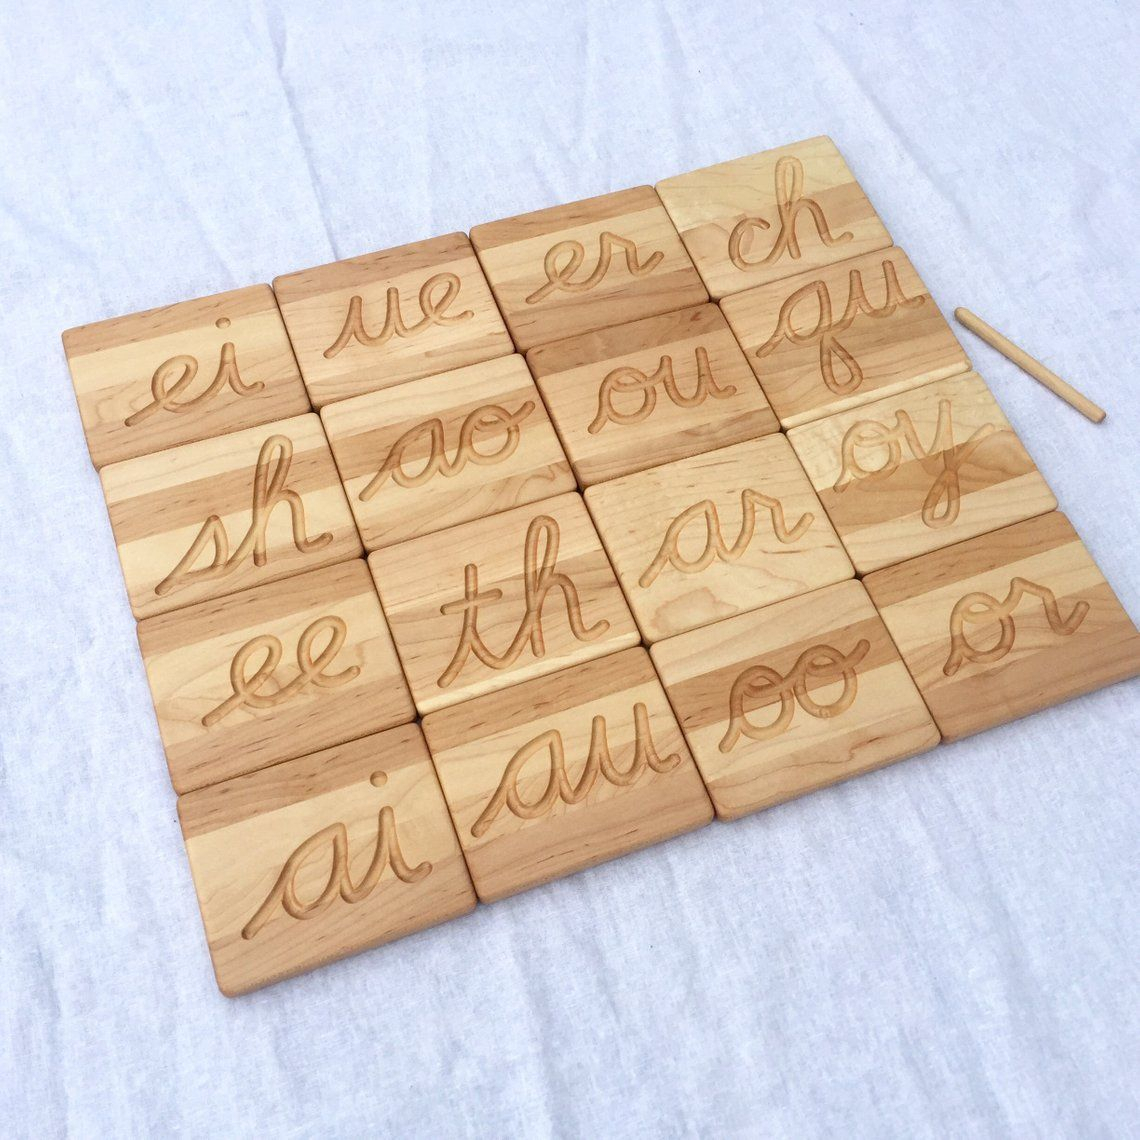 Cursive Double Letter Tracing Wooden Cards | Dremel Dreams for Tracing Letters On Wood